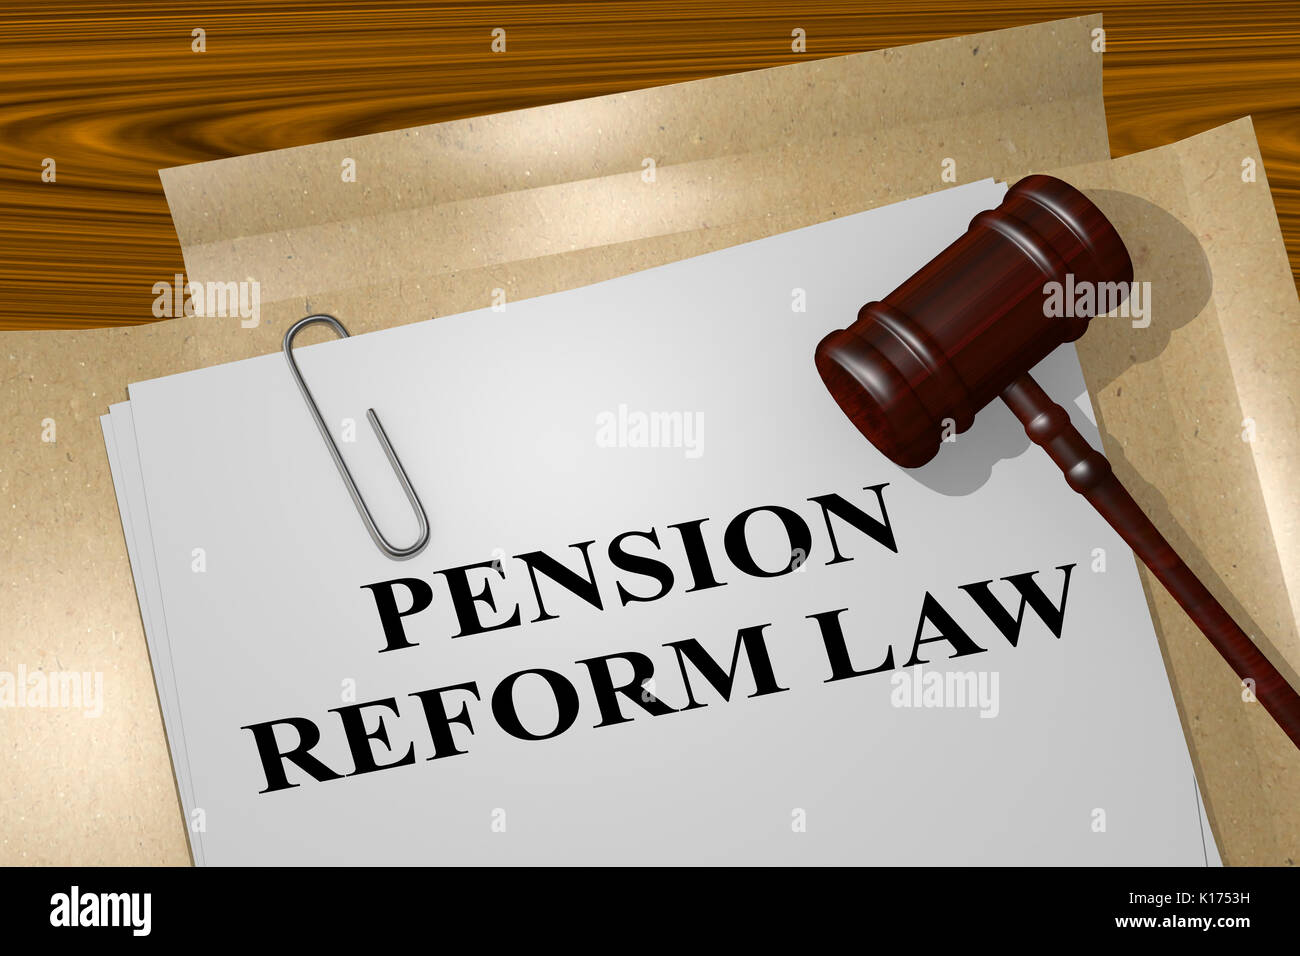 """3D illustration of """"PENSION REFORM LAW"""" title on legal document Stock Photo"""